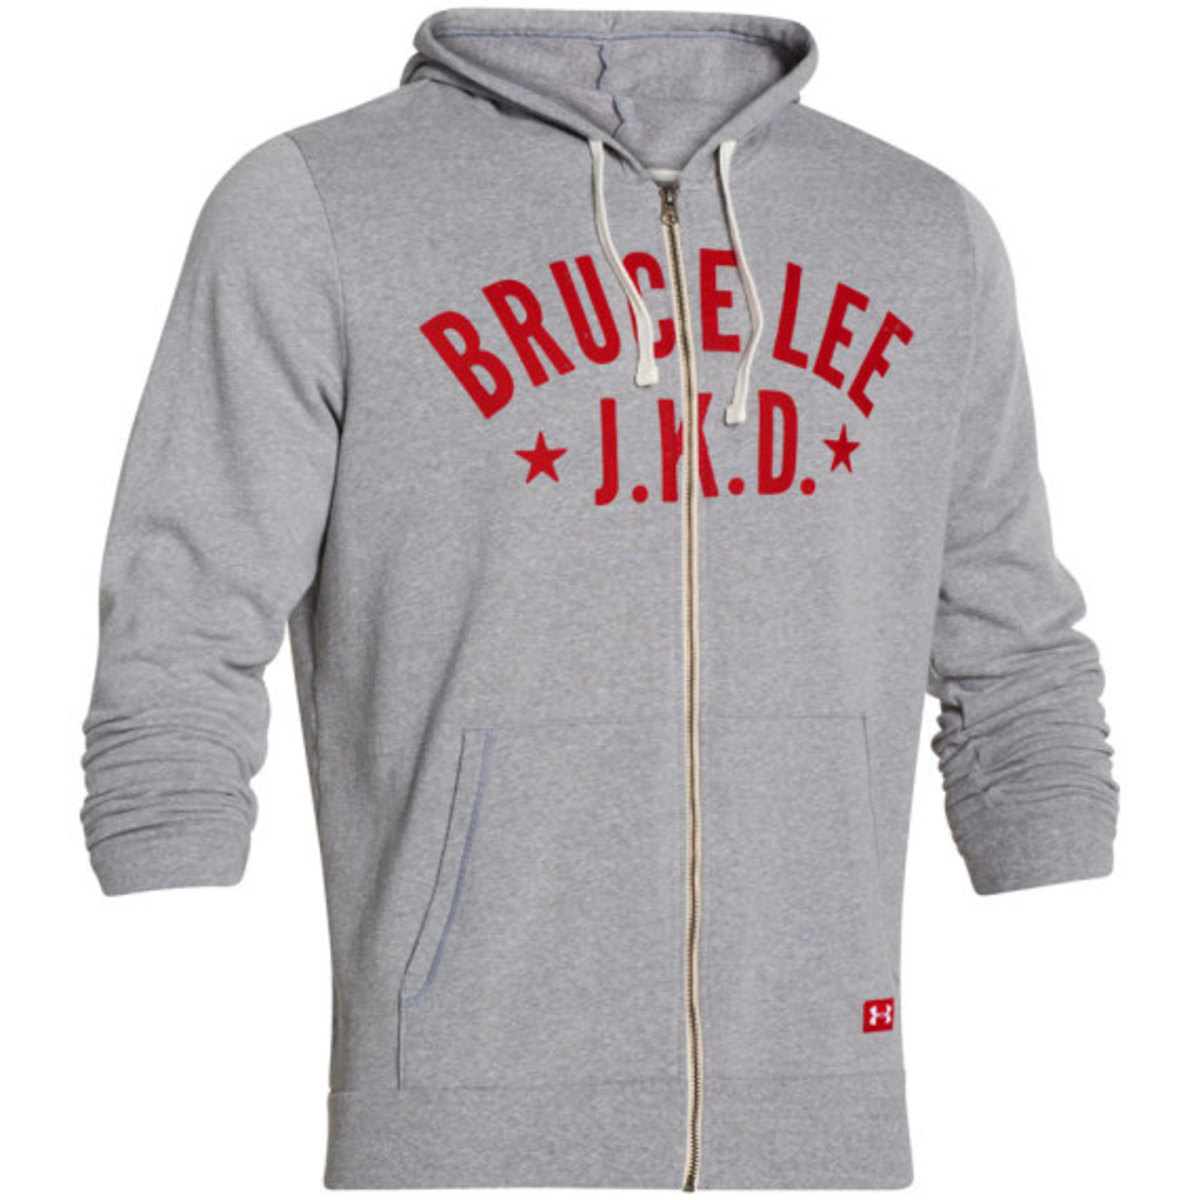 under-armour-roots-of-right-bruce-lee-collection-06